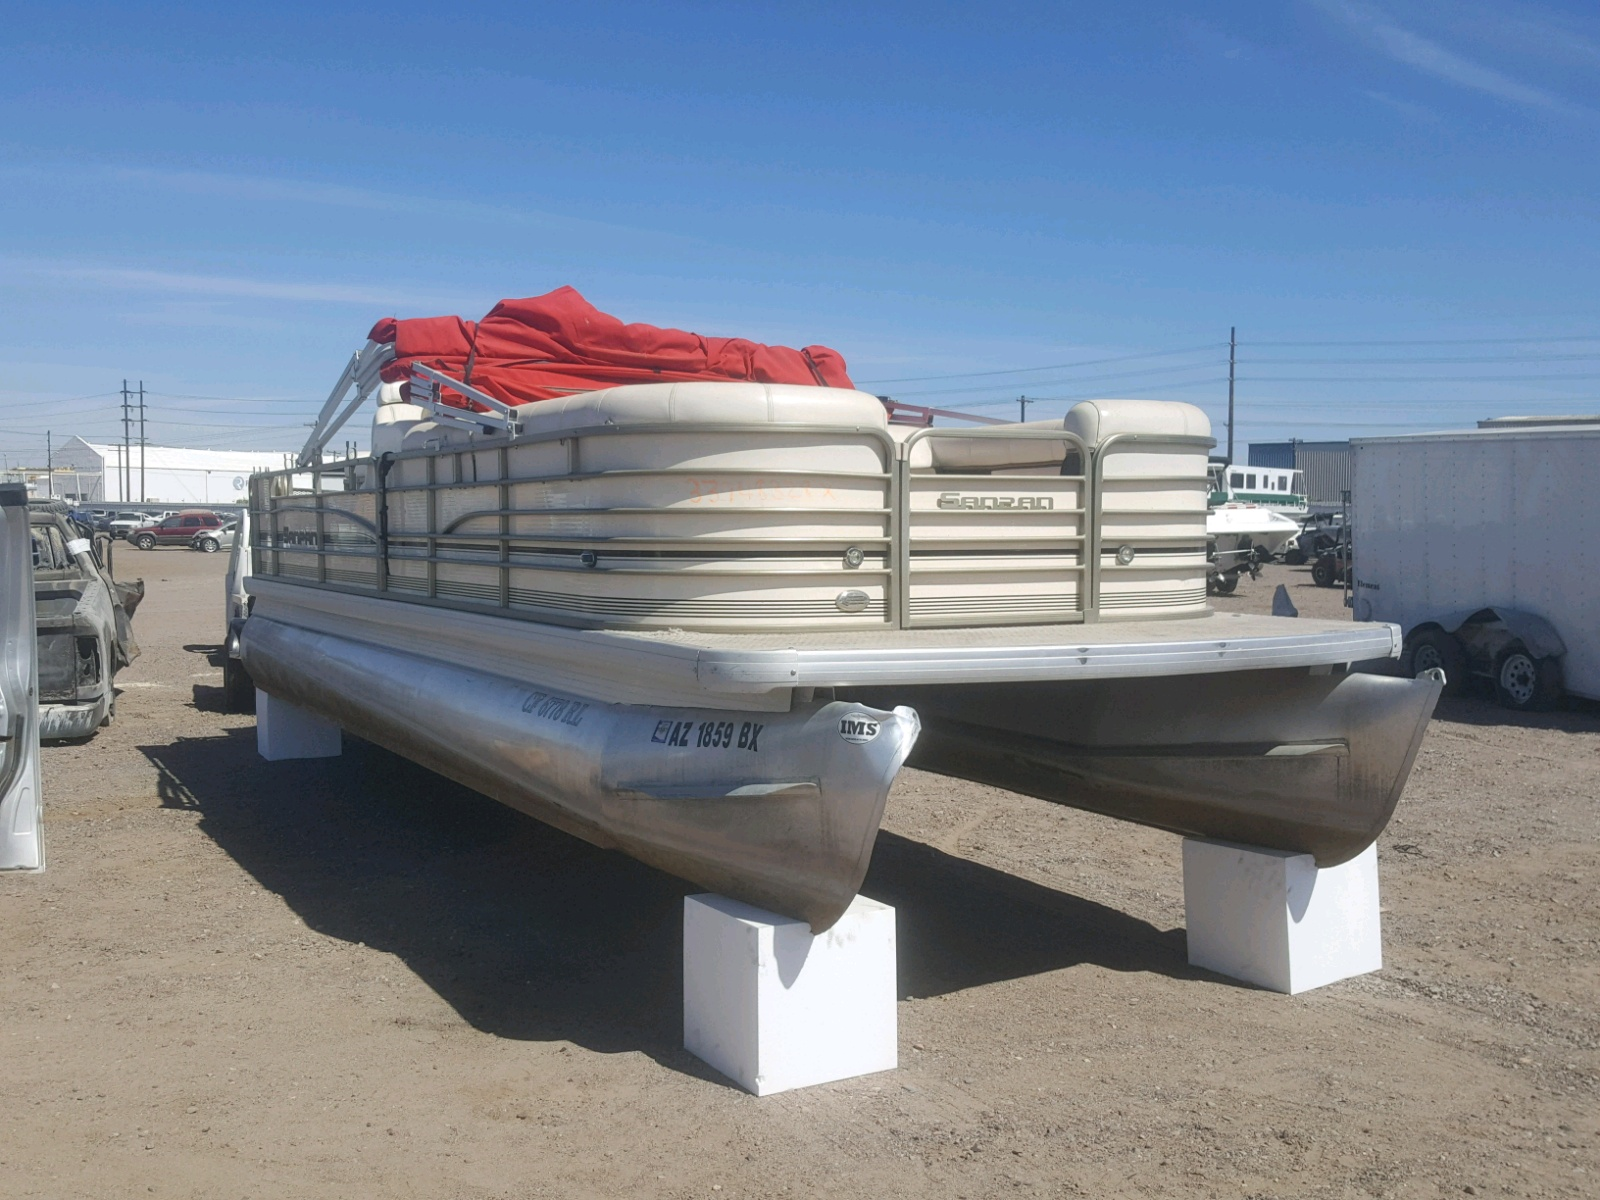 Salvage 2007 Sanp BOAT for sale